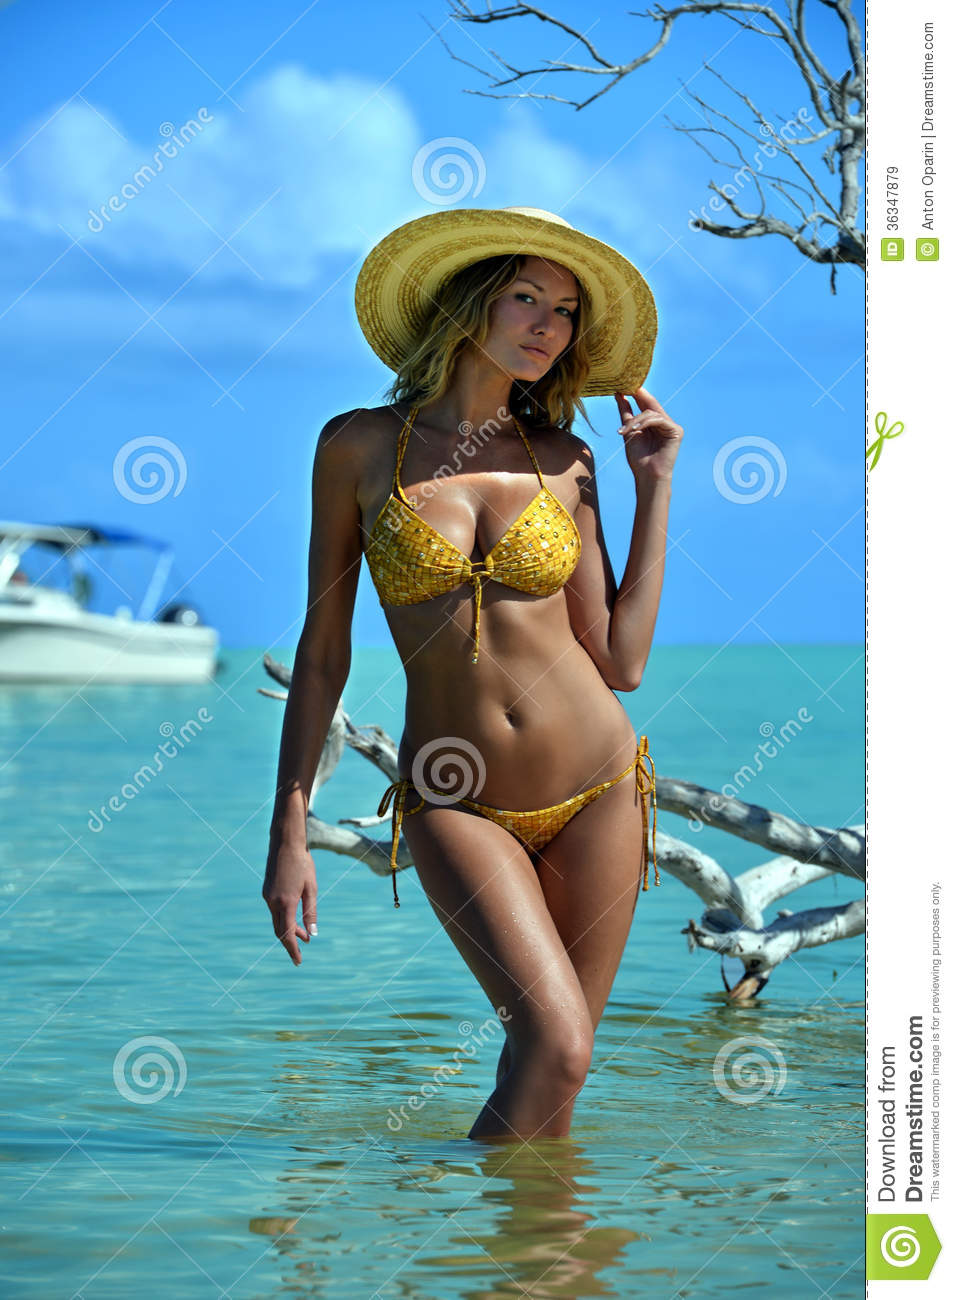 Bikini Model In Straw Hat Posing In Front Of Camera At ...